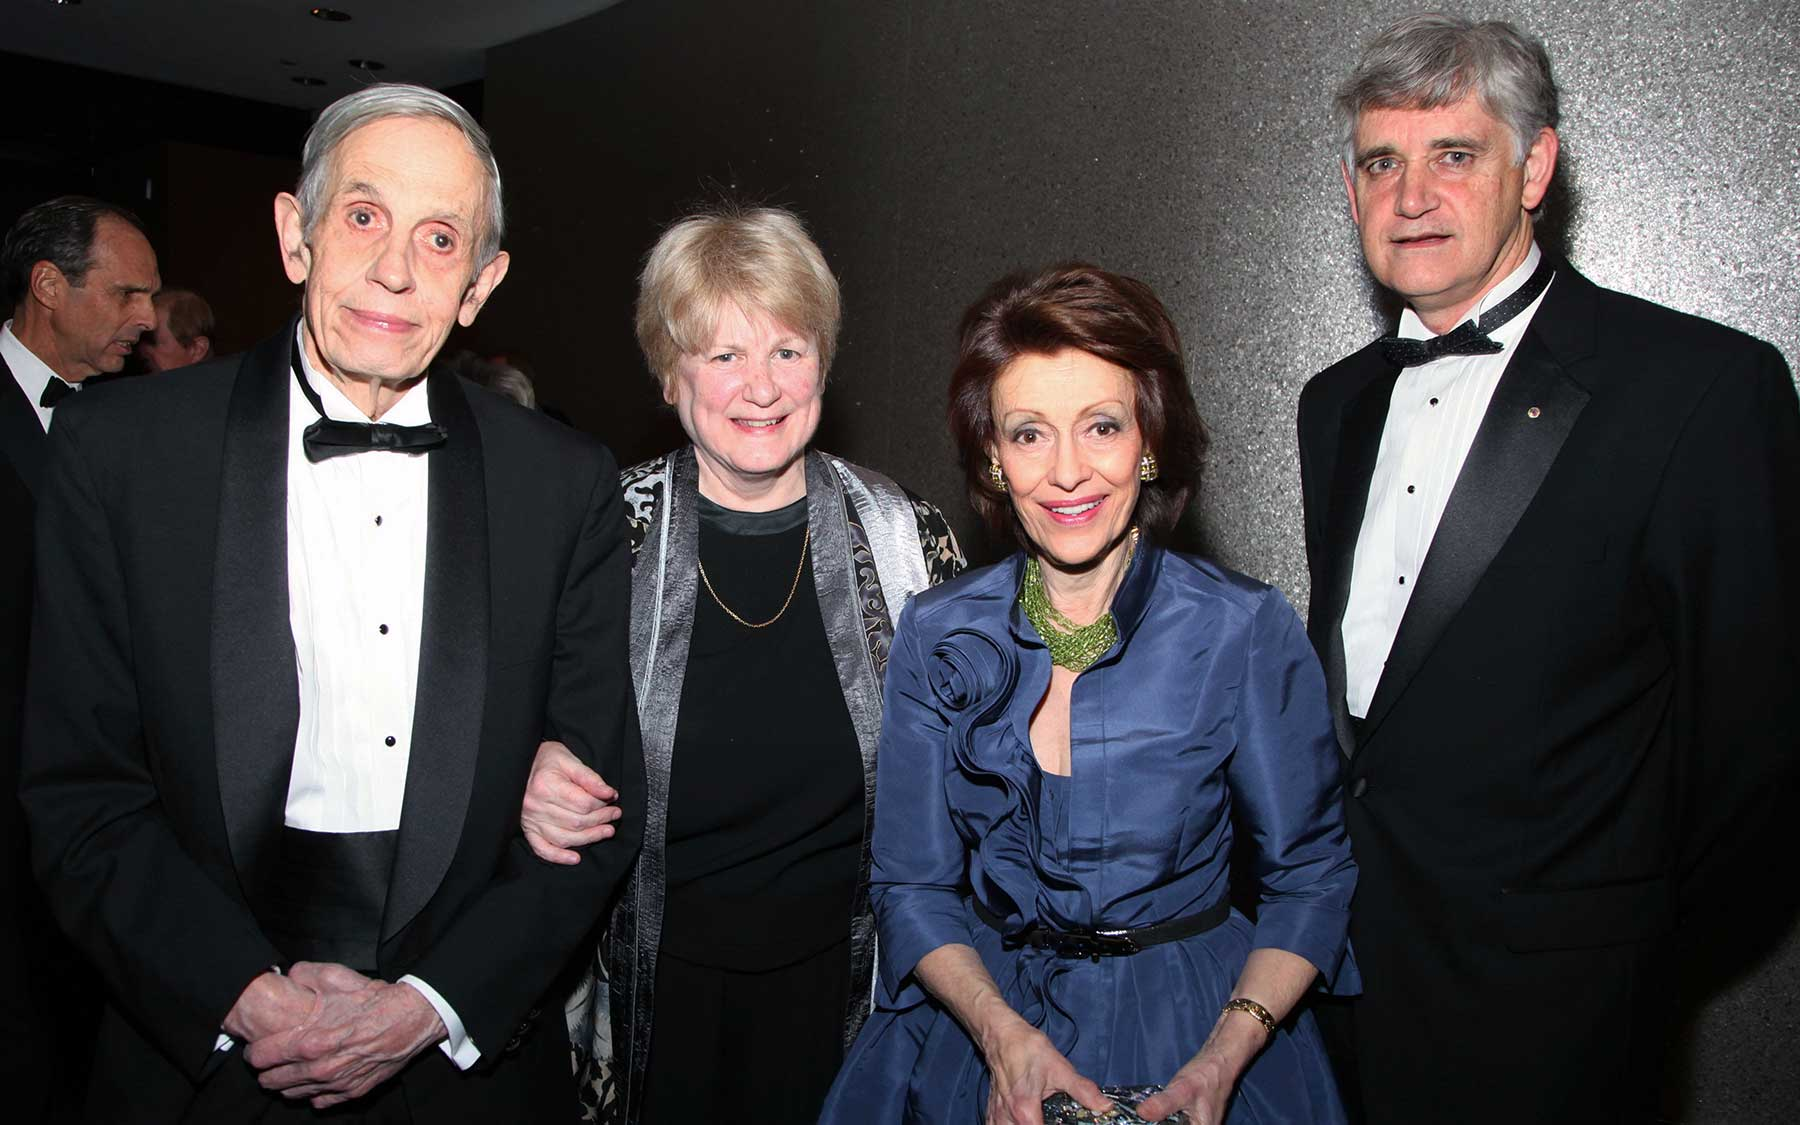 John F. Nash , Jr., Mary-Claire King, Evelyn Lauder, and Bruce Stillman